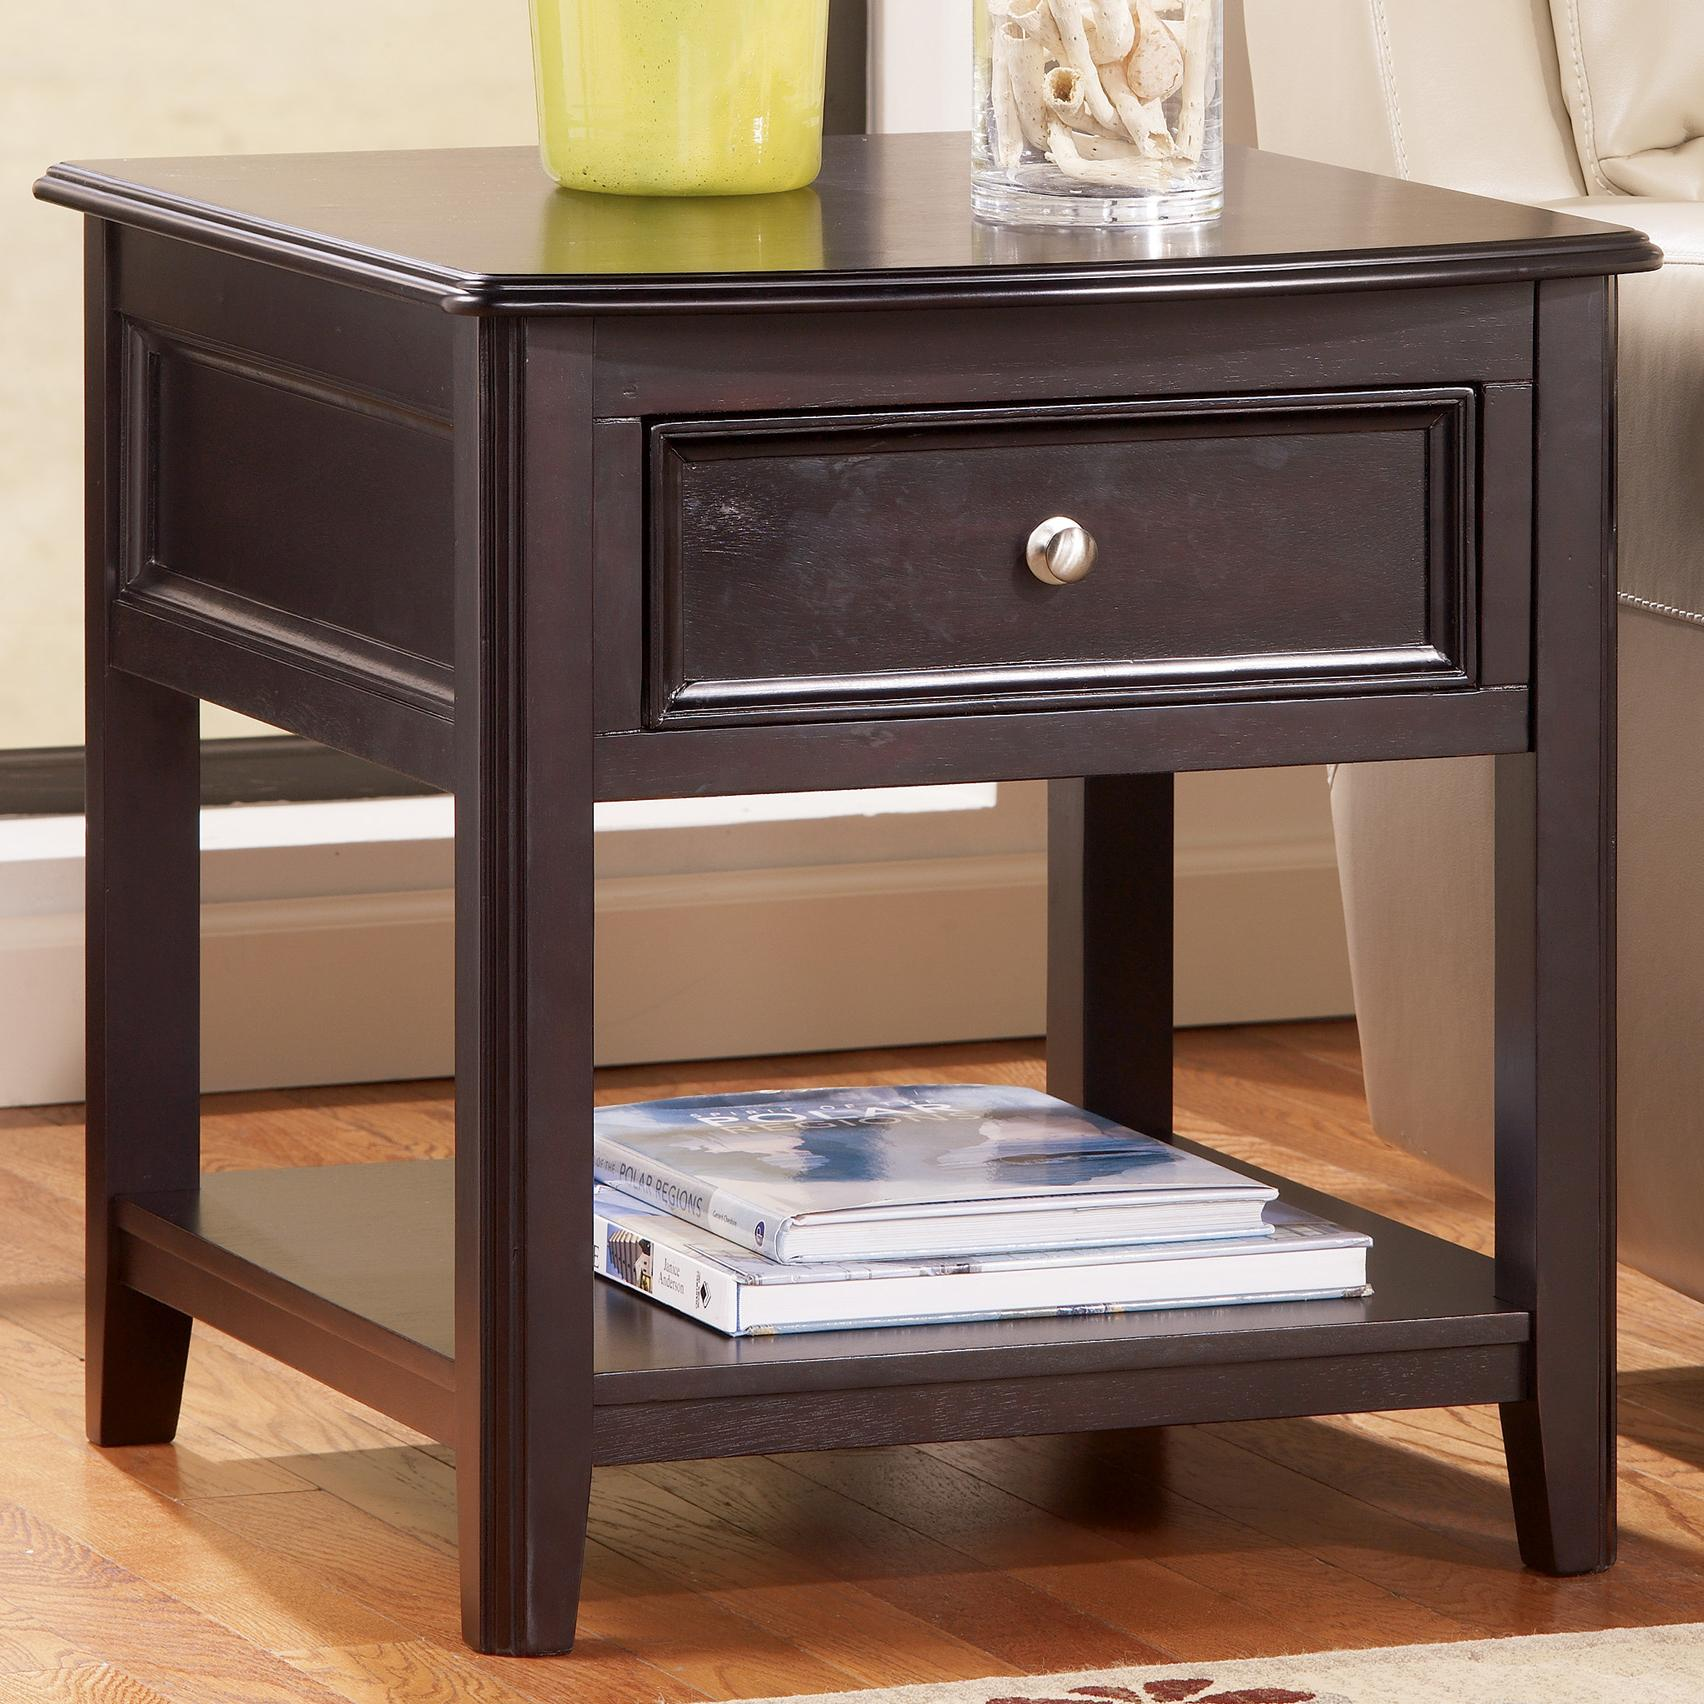 Black End Tables With Drawer Carlyle Rectangular End Table With Drawer And Bottom Shelf By Signature Design By Ashley At Royal Furniture